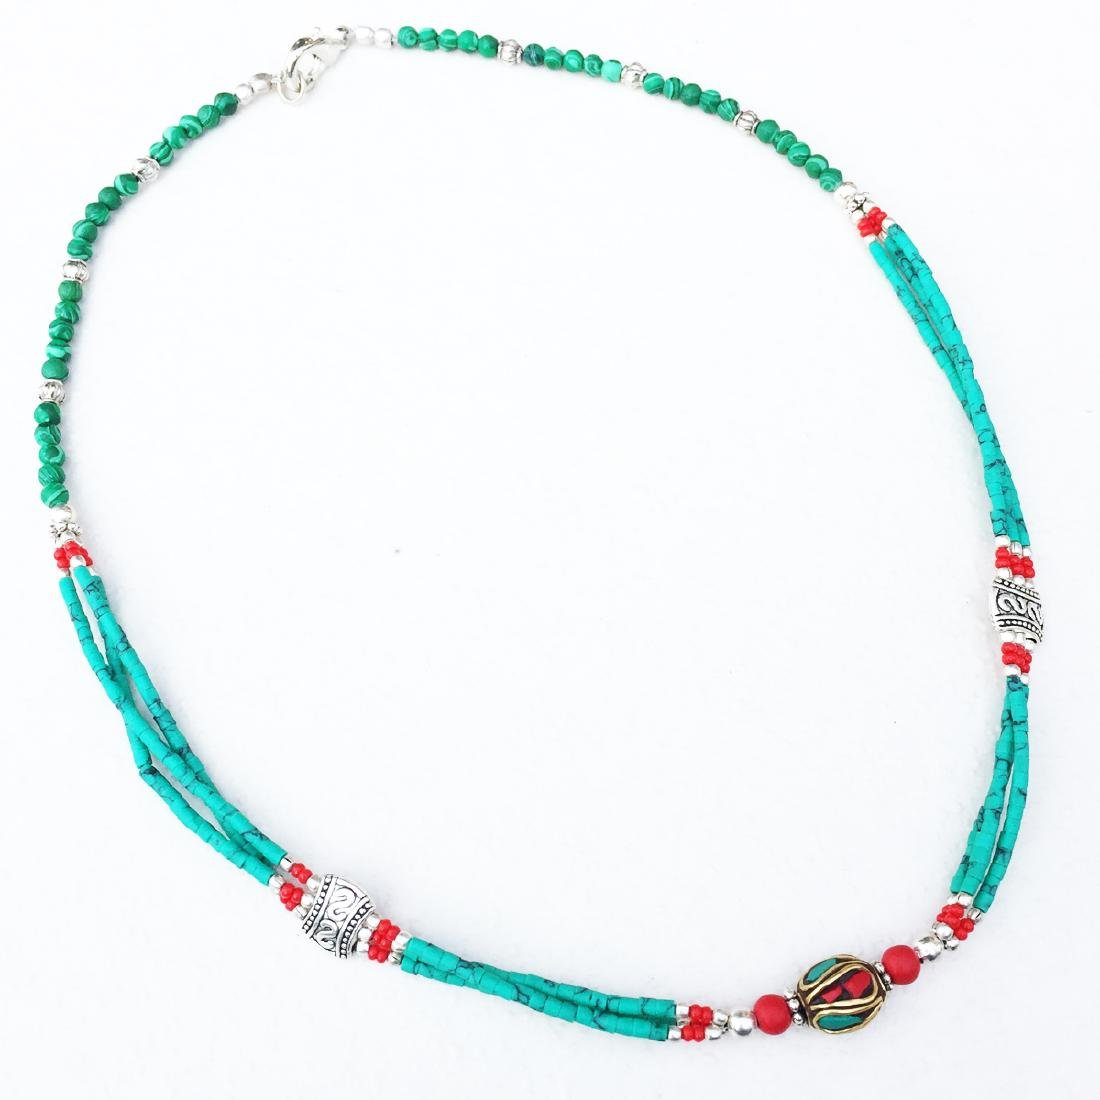 SINGLE STRAND TURQUOISE BEADED NECKLACE WITH BEAD - 2